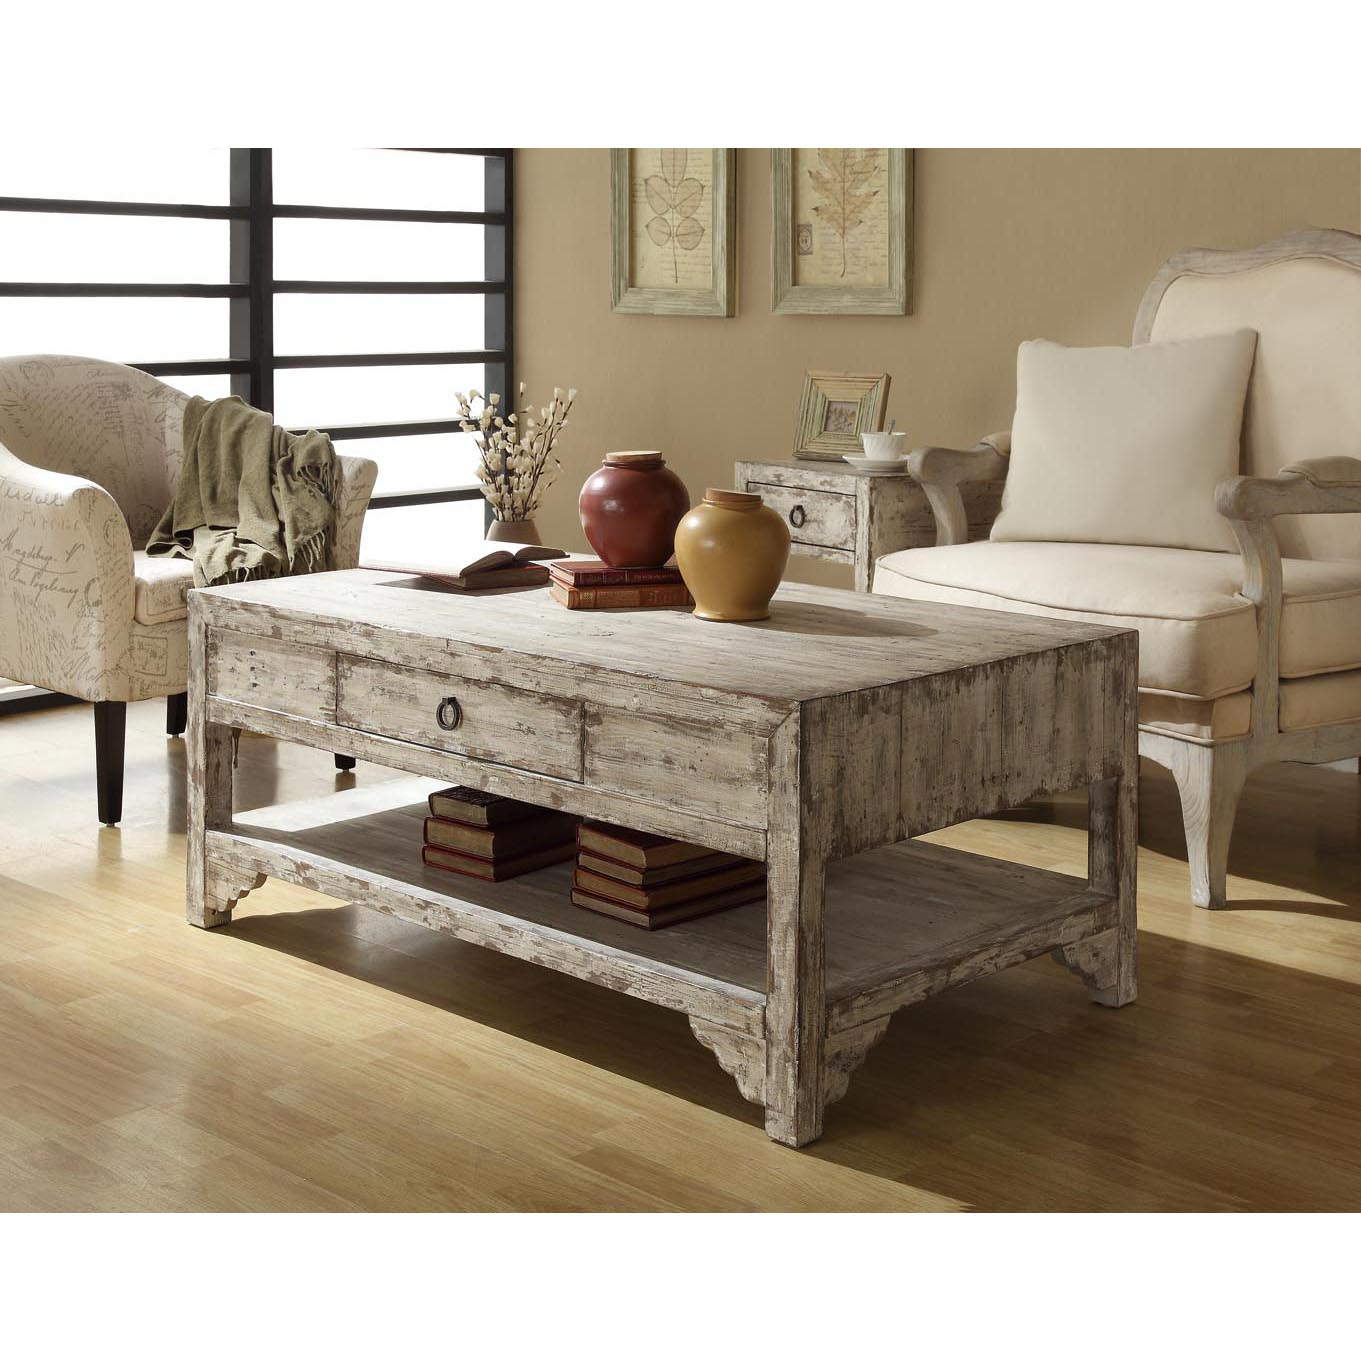 lovable long accent table with mixed taupe reclaimed wood free shipping today behind couch wooden bar outdoor iron coffee runner deck furniture set breakfast stools antique drop